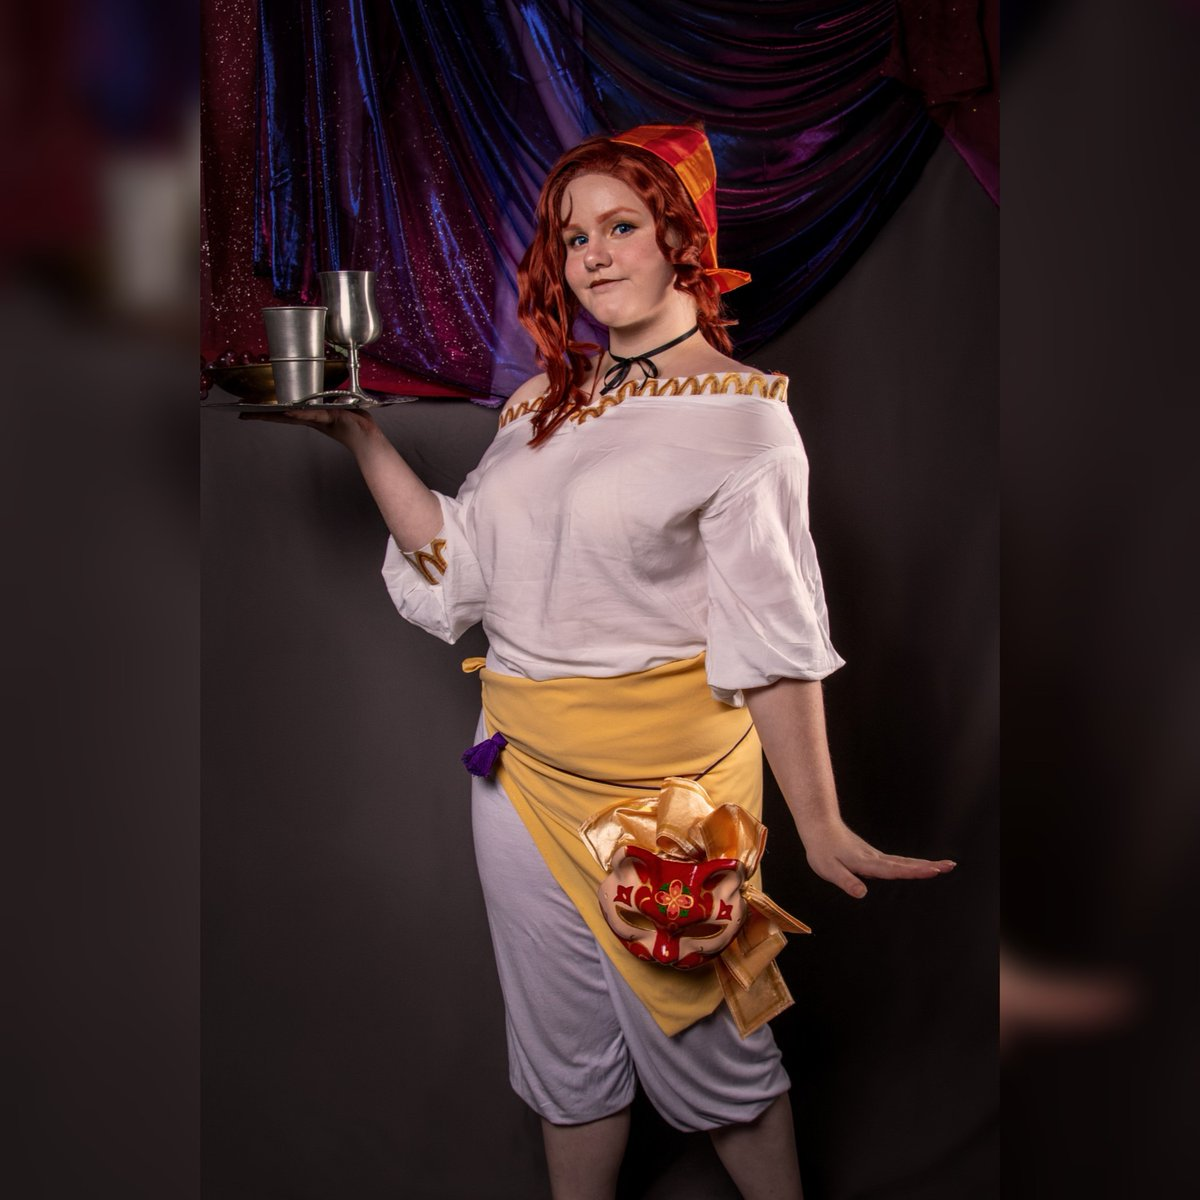 """Would you like a drink, or some snacks?""  Character: Portia Devorak Franchise: @thearcanagame Picture and Edit: rockingraccoon_photography (IG) Full post: https://www.instagram.com/p/B5NwnbFnROM/?igshid=griw0w24wf03 …  #portiadevorak #portiadevorakcosplay #portiathearcana #thearcanacosplay #portiacosplaypic.twitter.com/Hys0C9YpNU"